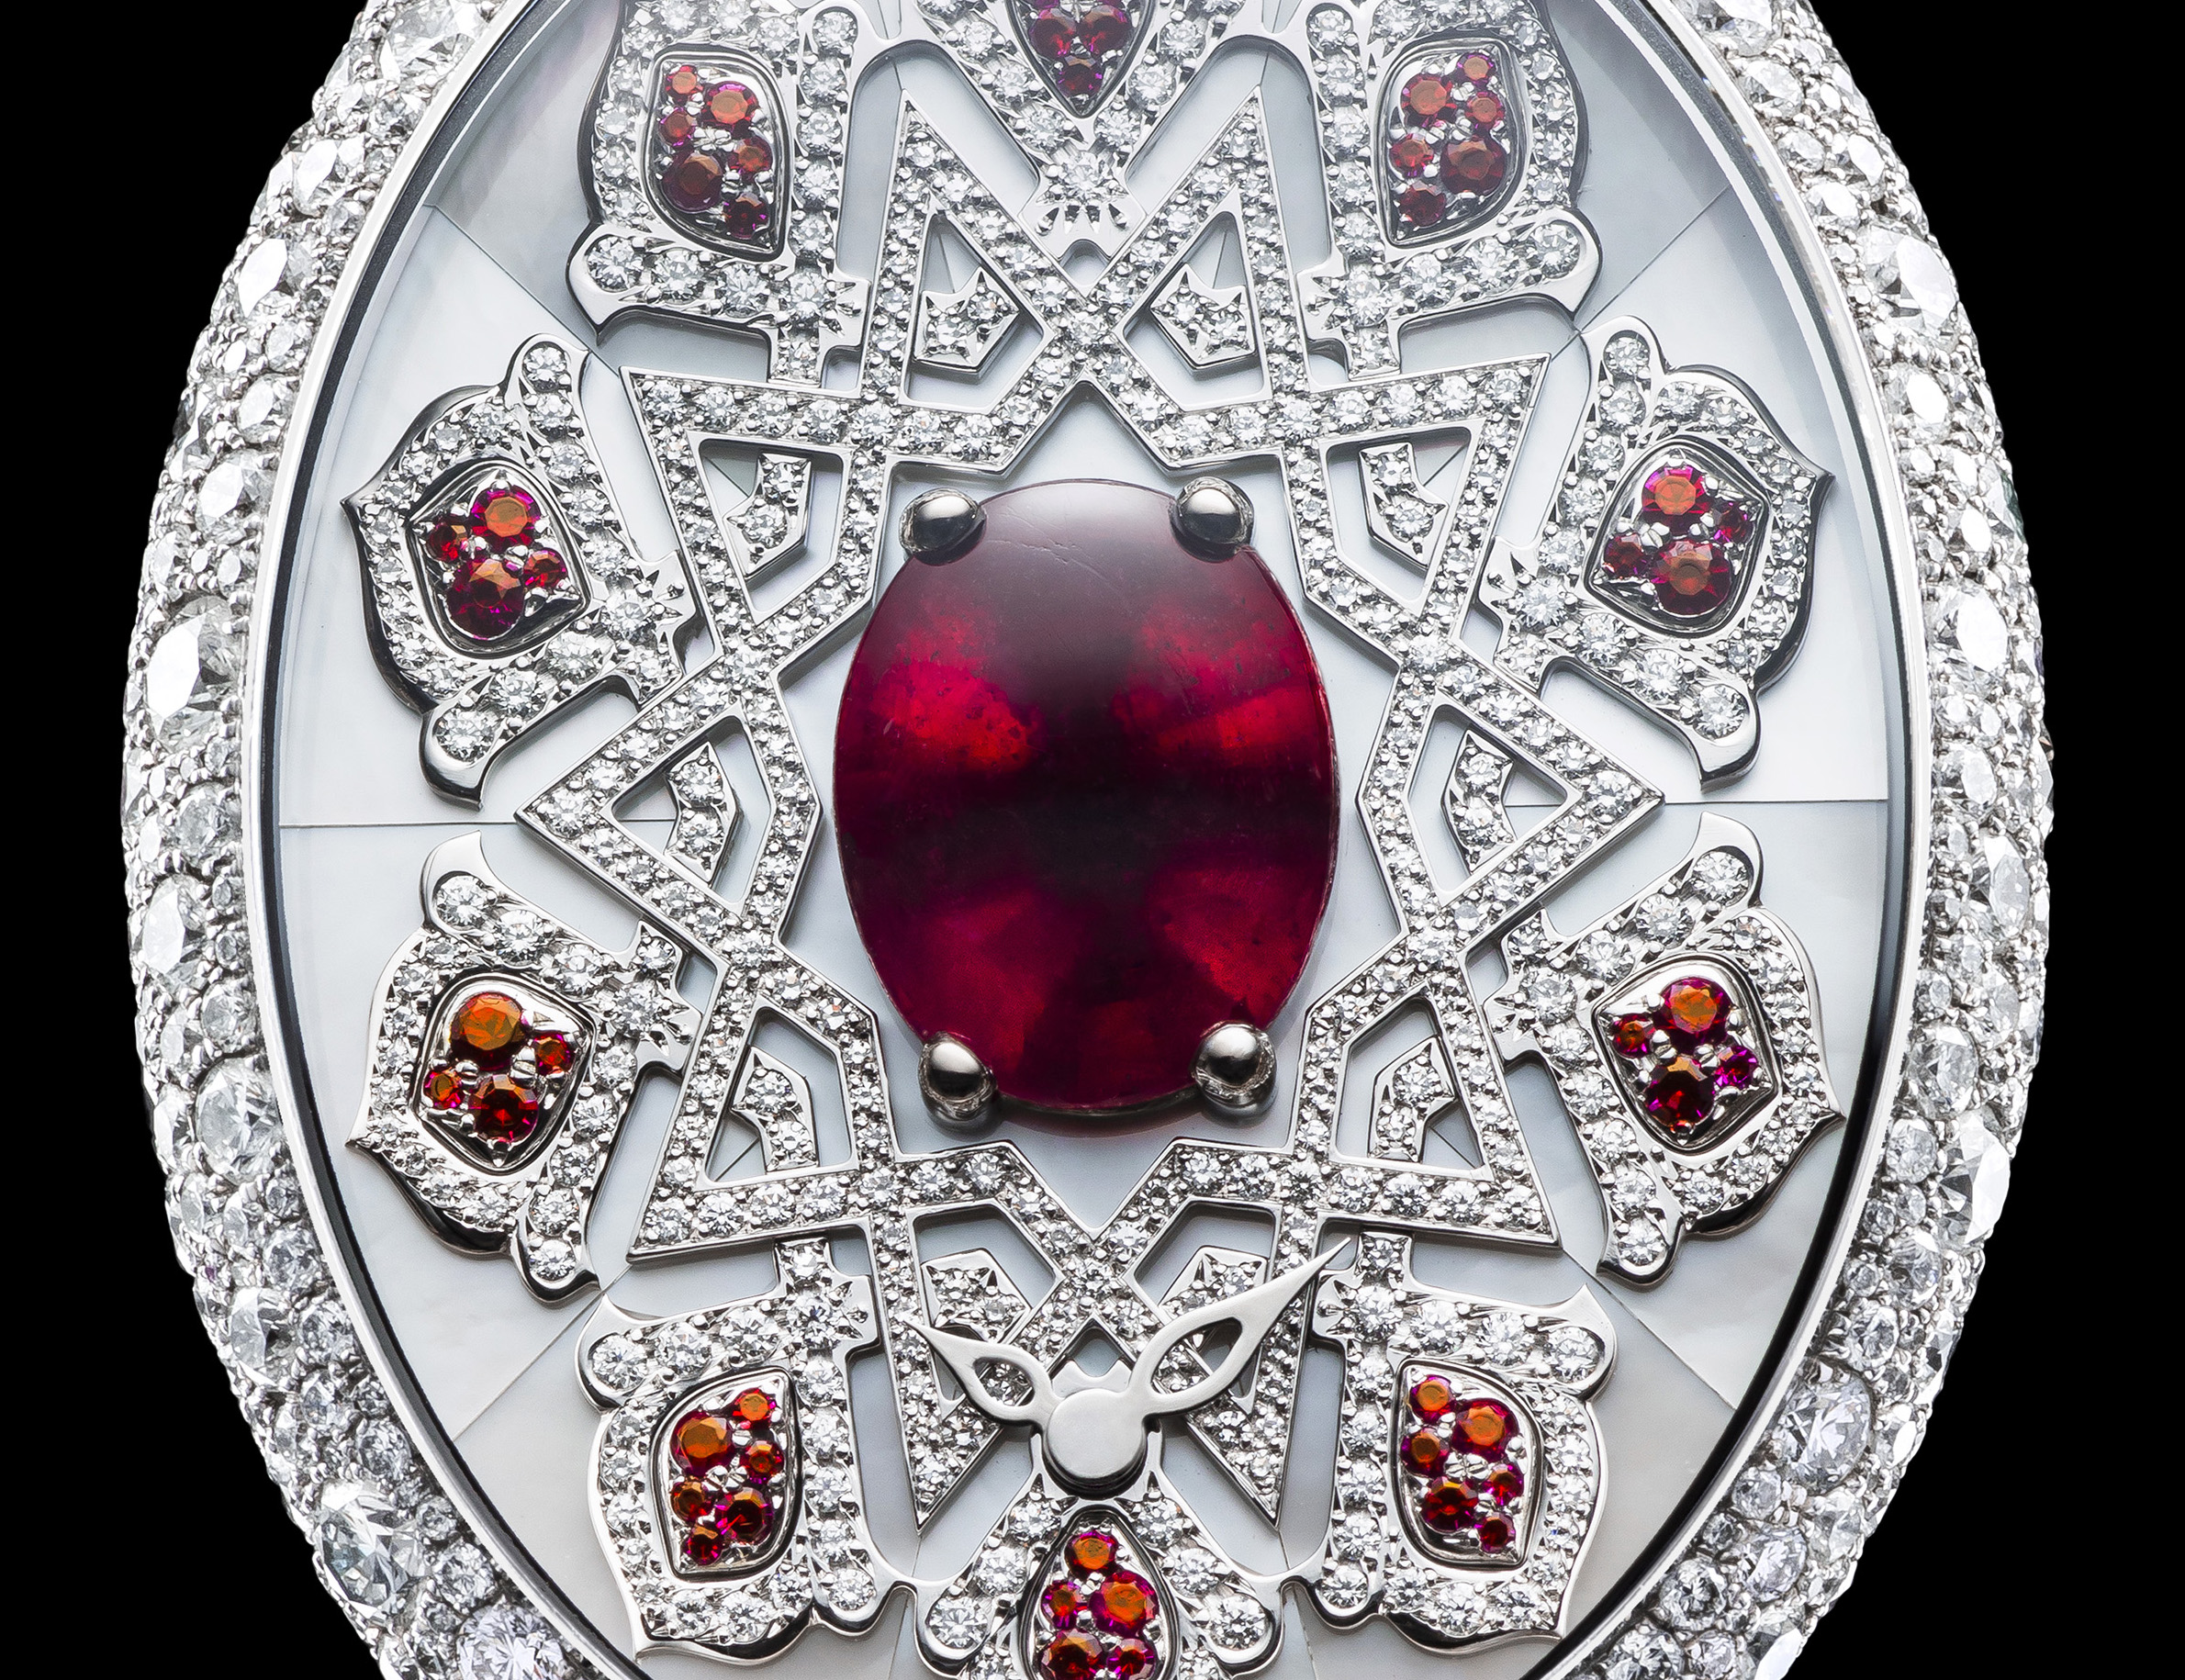 Van 'T Hoff Ruby Arabesque Art Watch